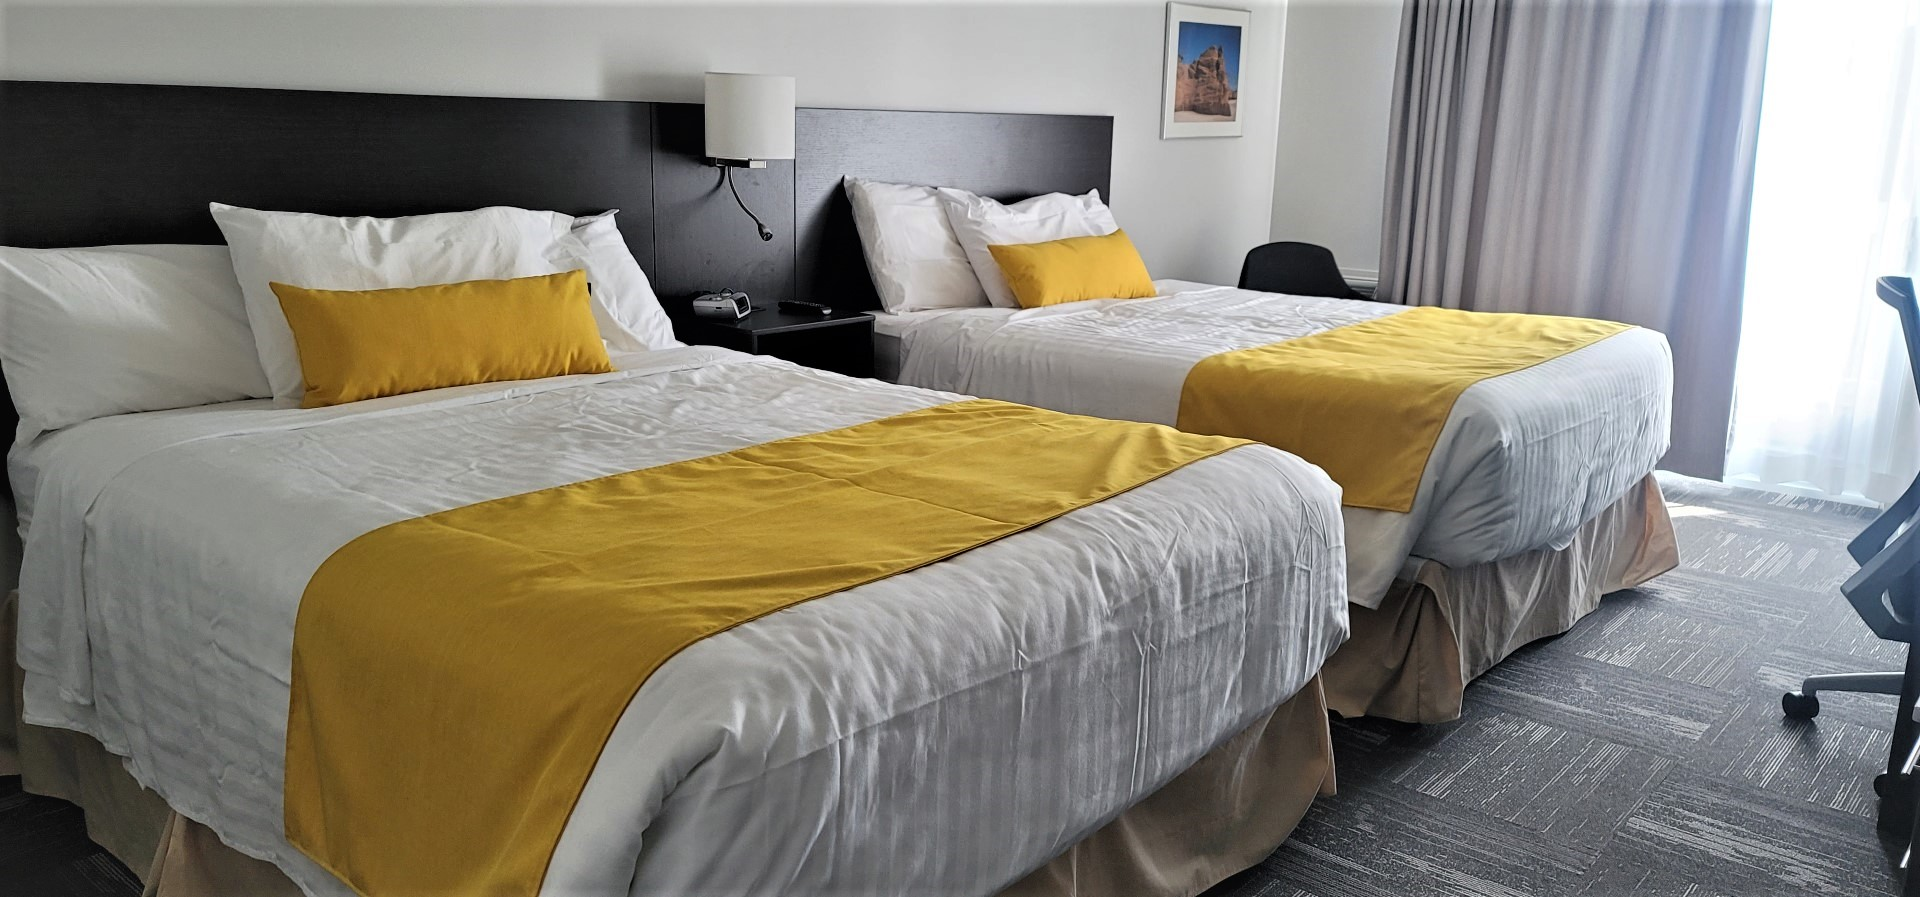 white bedsheets with yellow accents at chateau madelinot